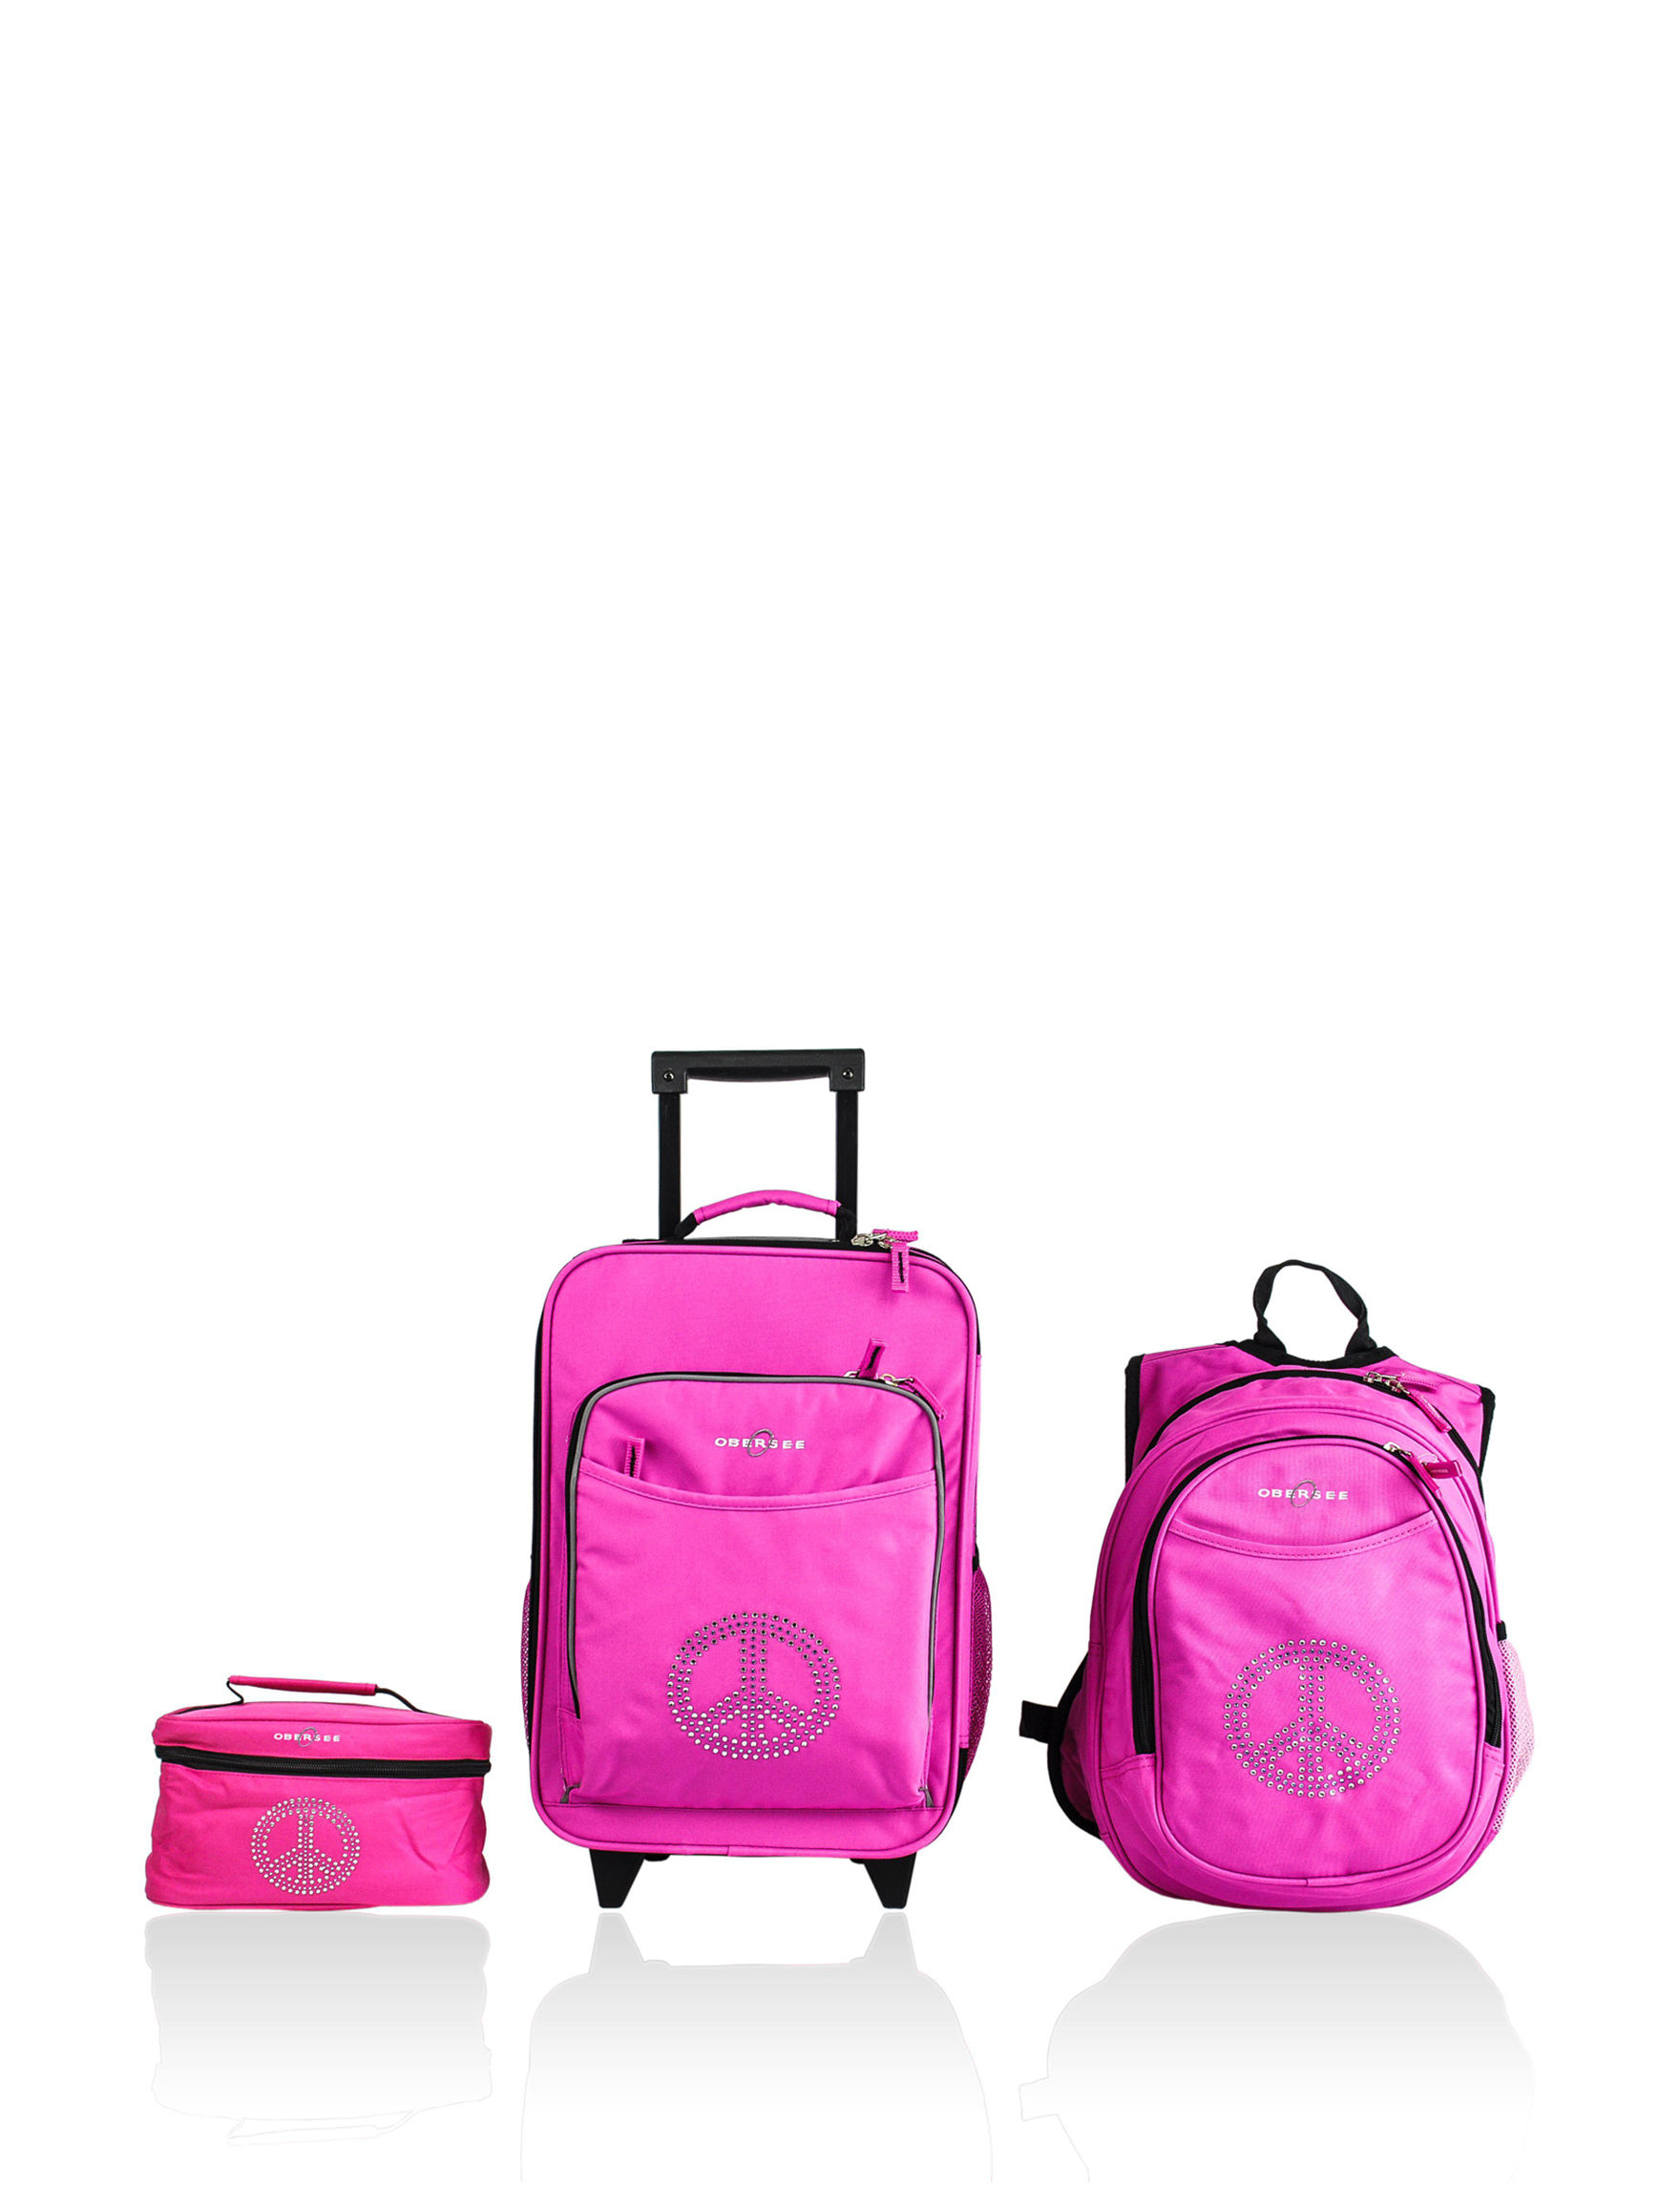 Obersee Pink Luggage Sets